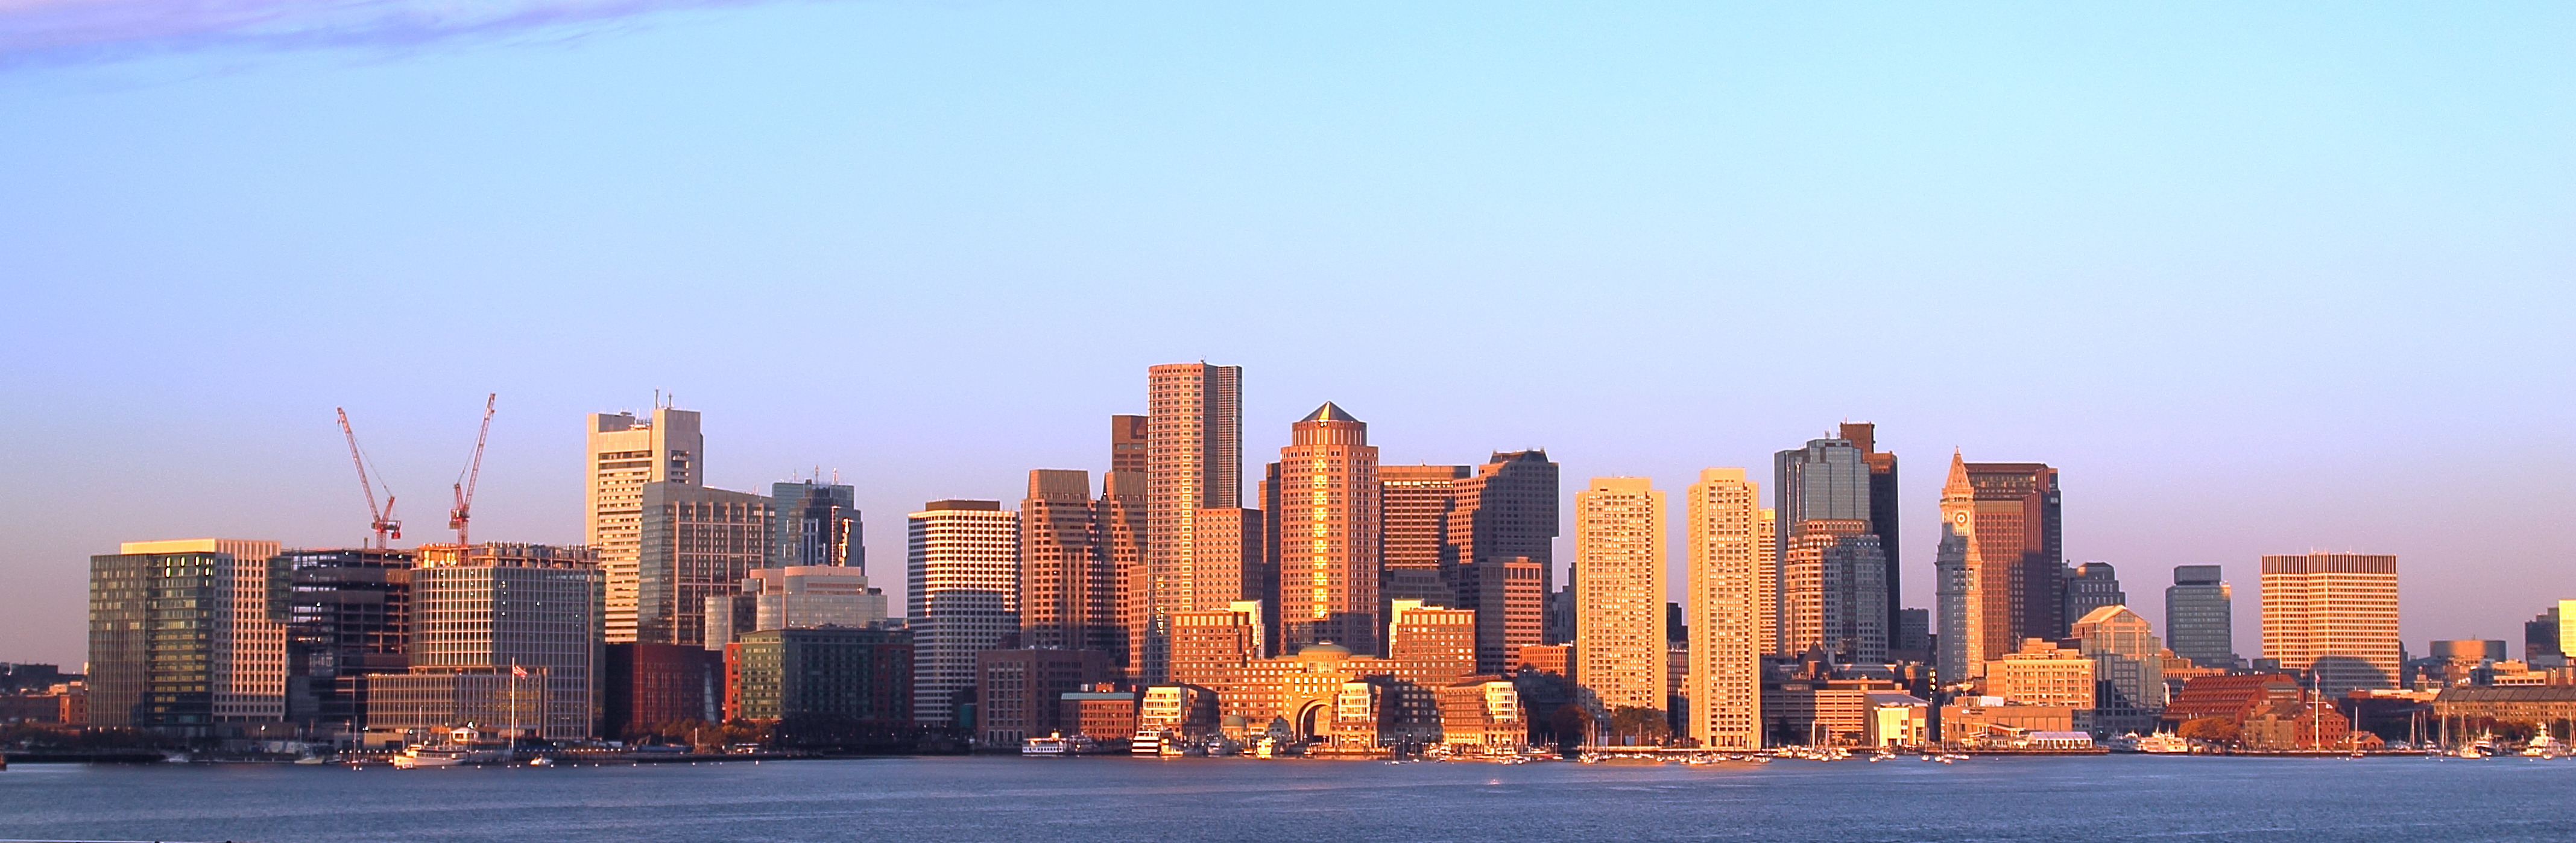 A view of the Boston downtown area